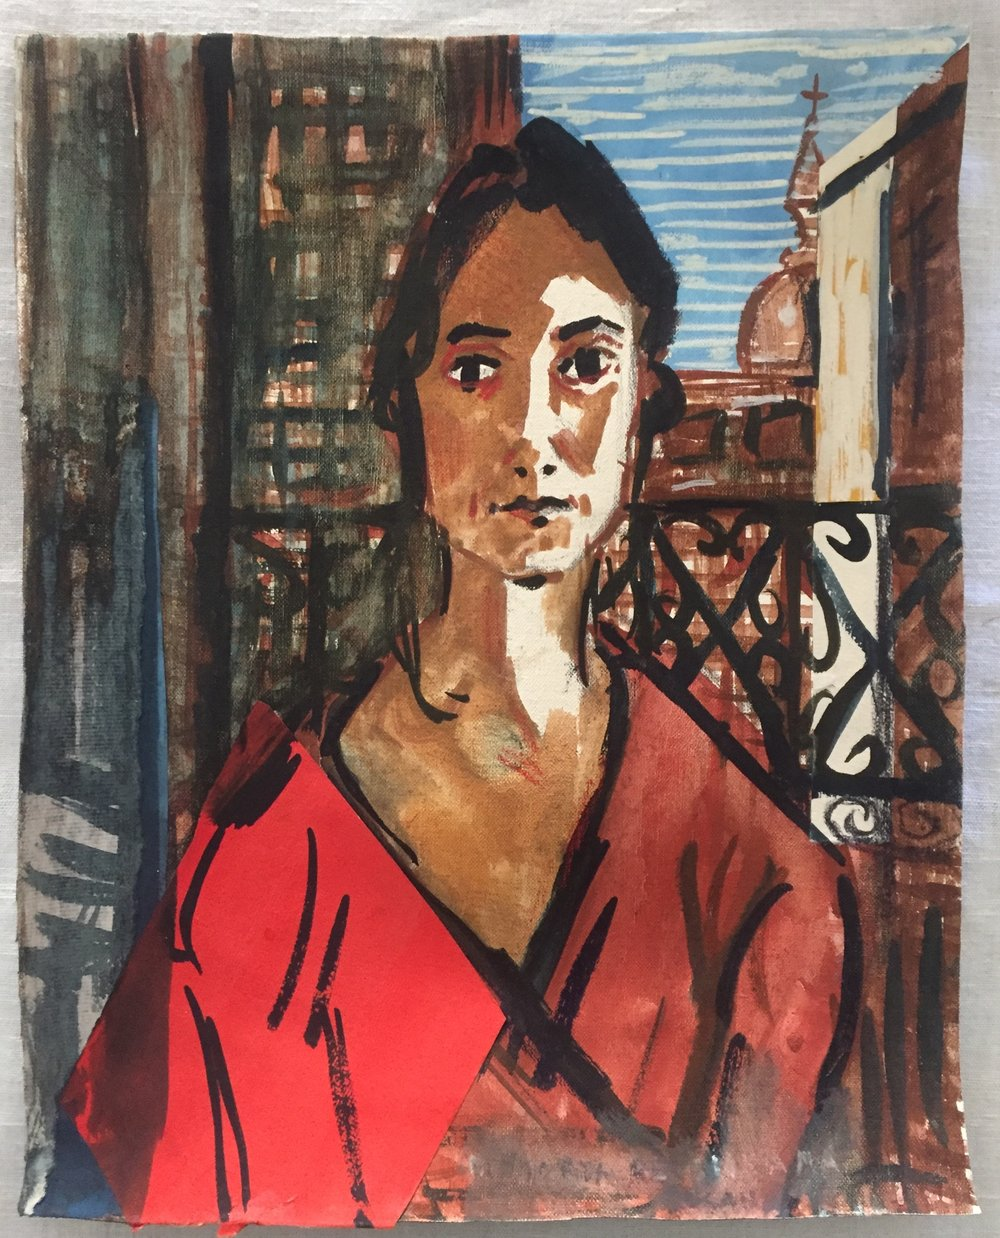 Susana in Madrid , 2018, Gouache on linen, 13.75x11 inches